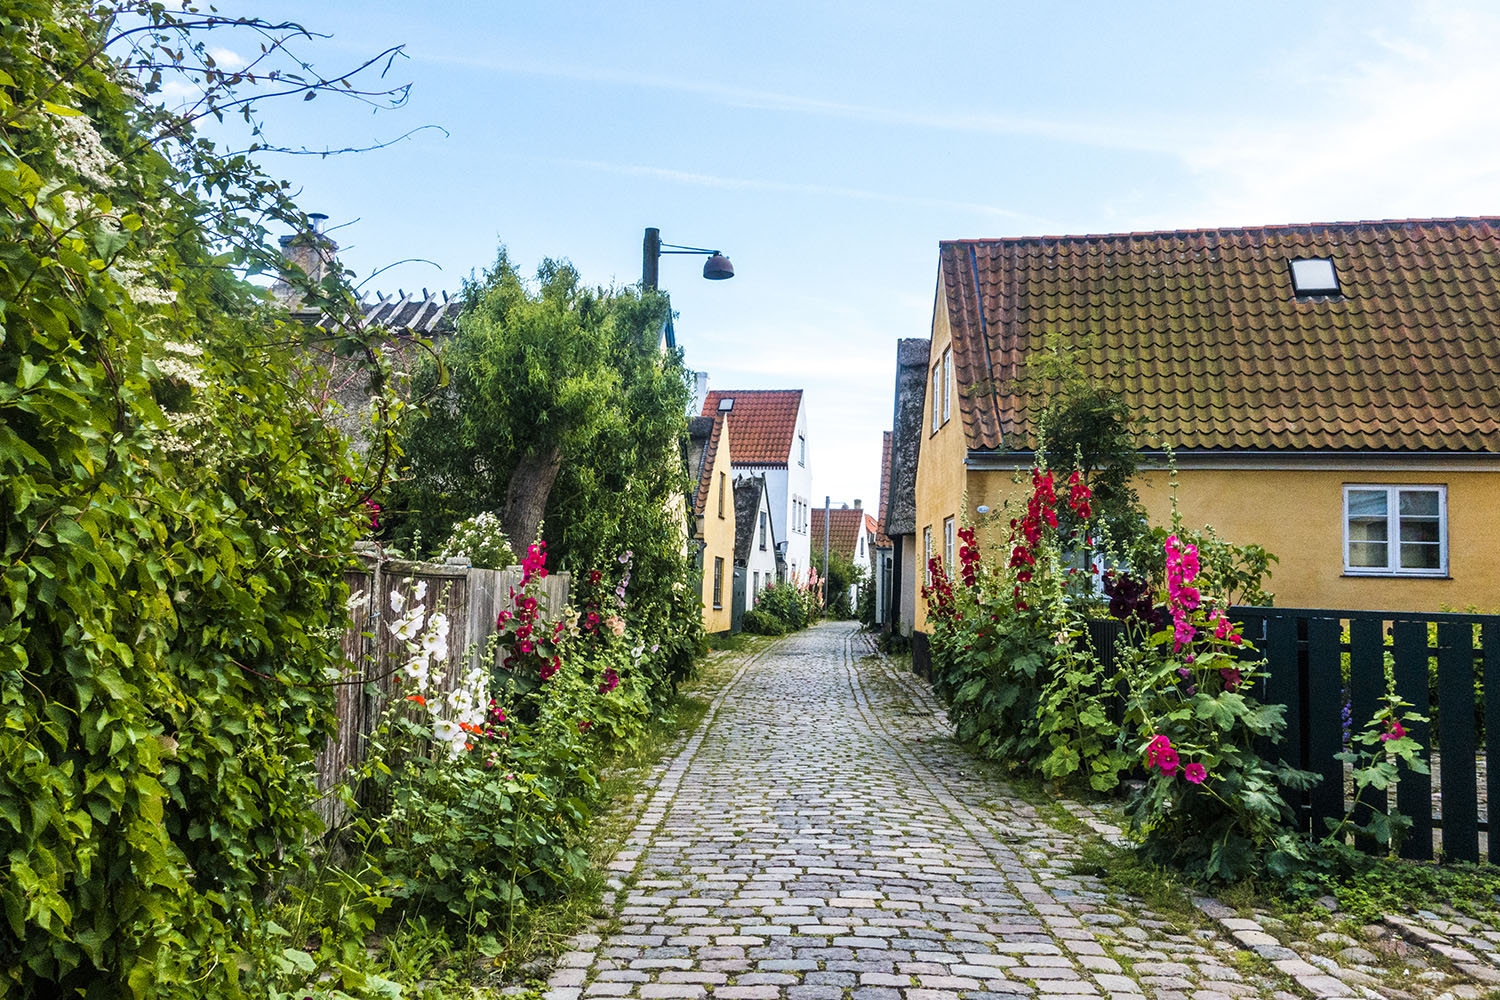 Dragør_130717_HelenaLundquist_9.small